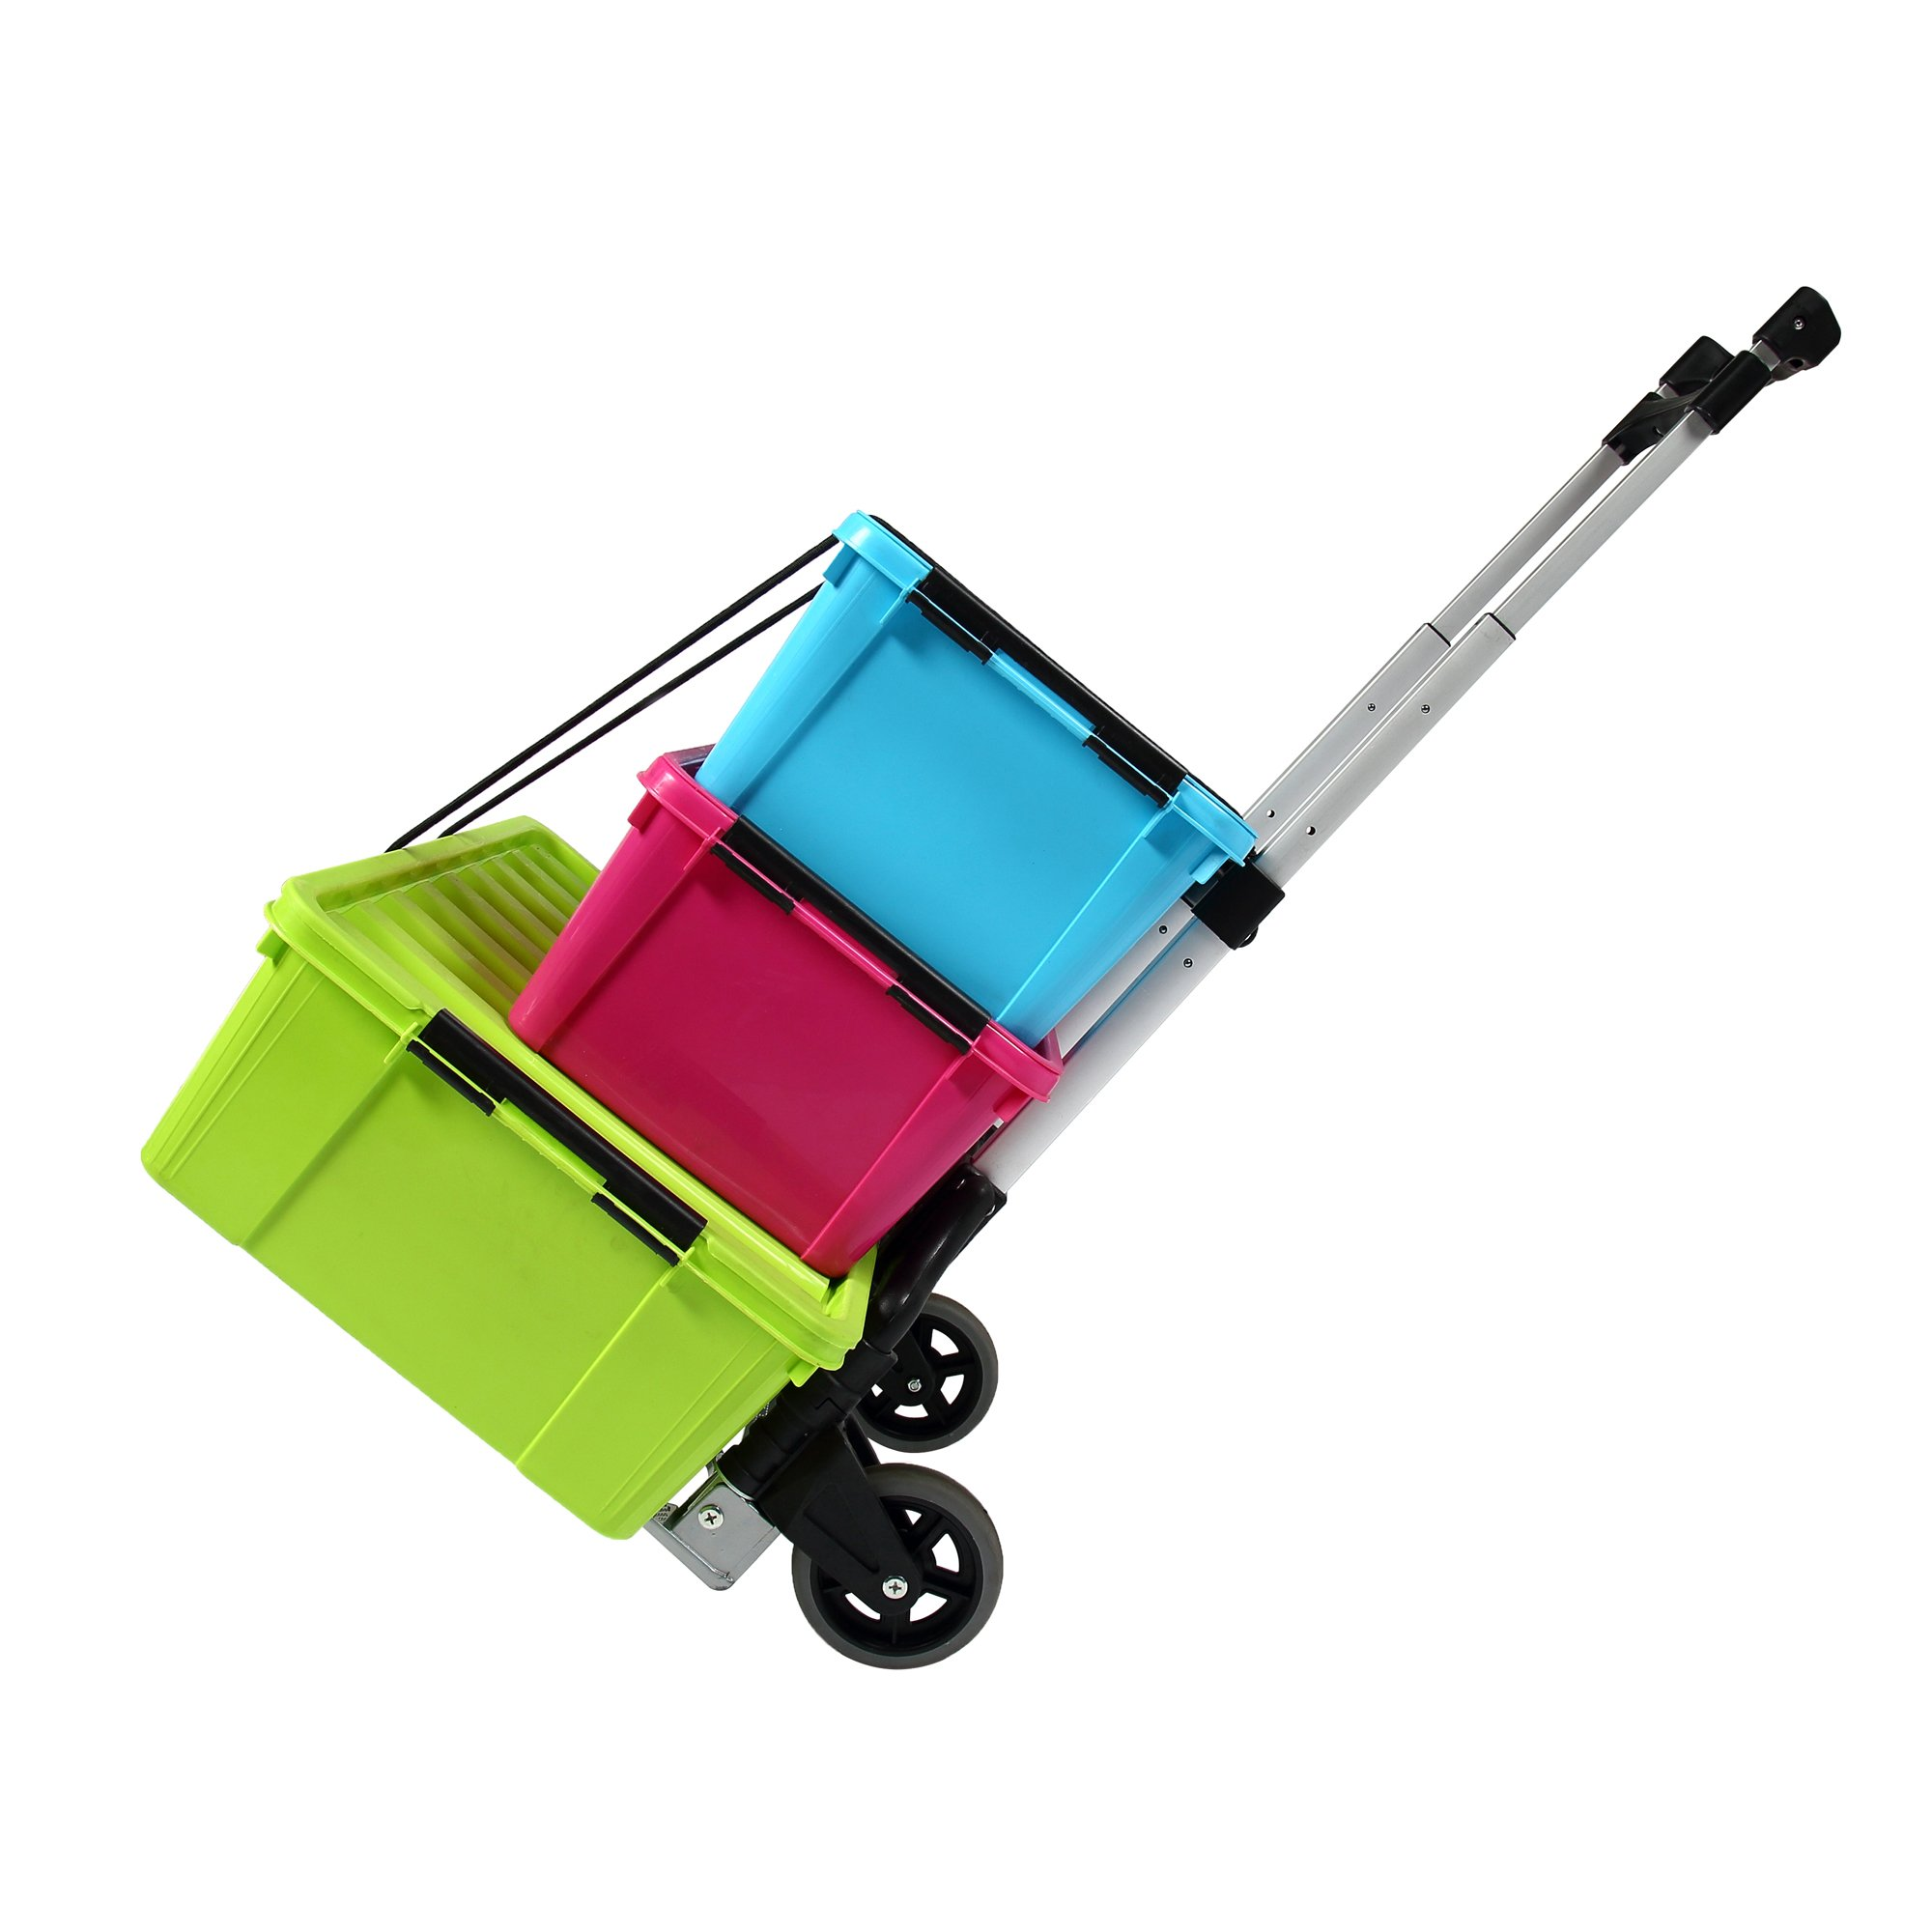 KingCamp Folding Cart 150 lbs Capacity Hand Truck with Bungee Cord by KingCamp (Image #6)